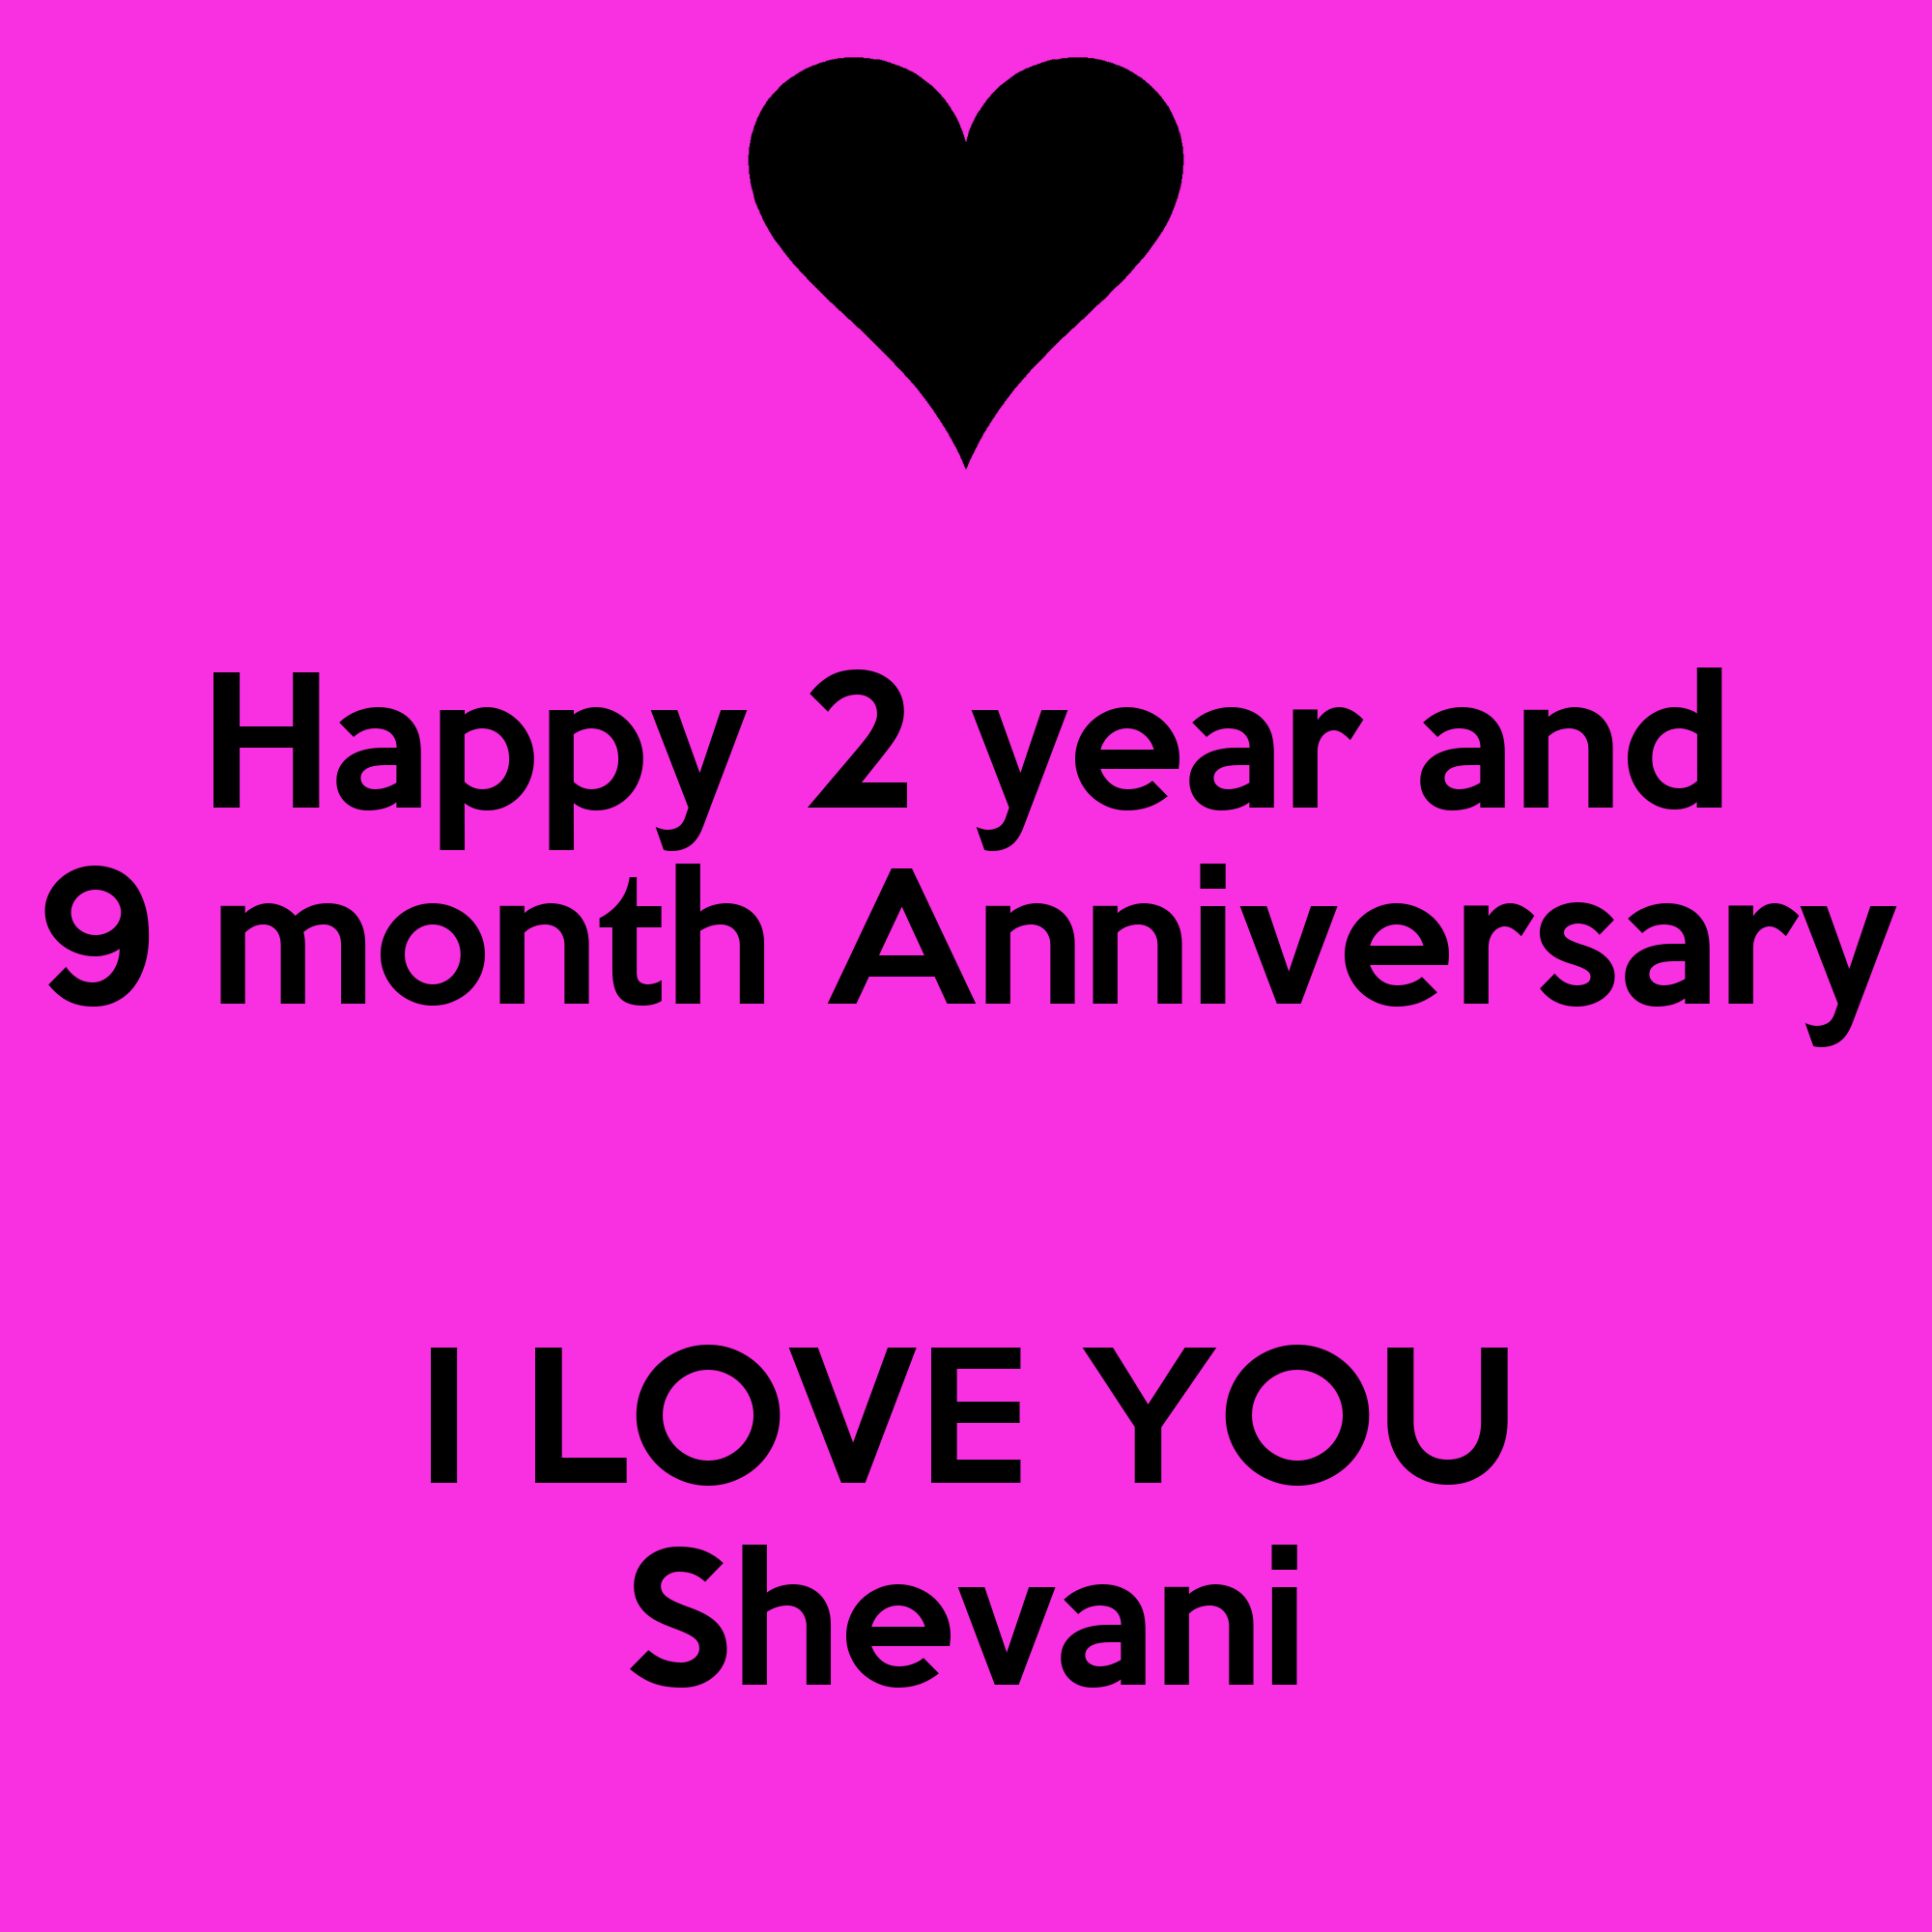 Happy year and month anniversary i love you shevani